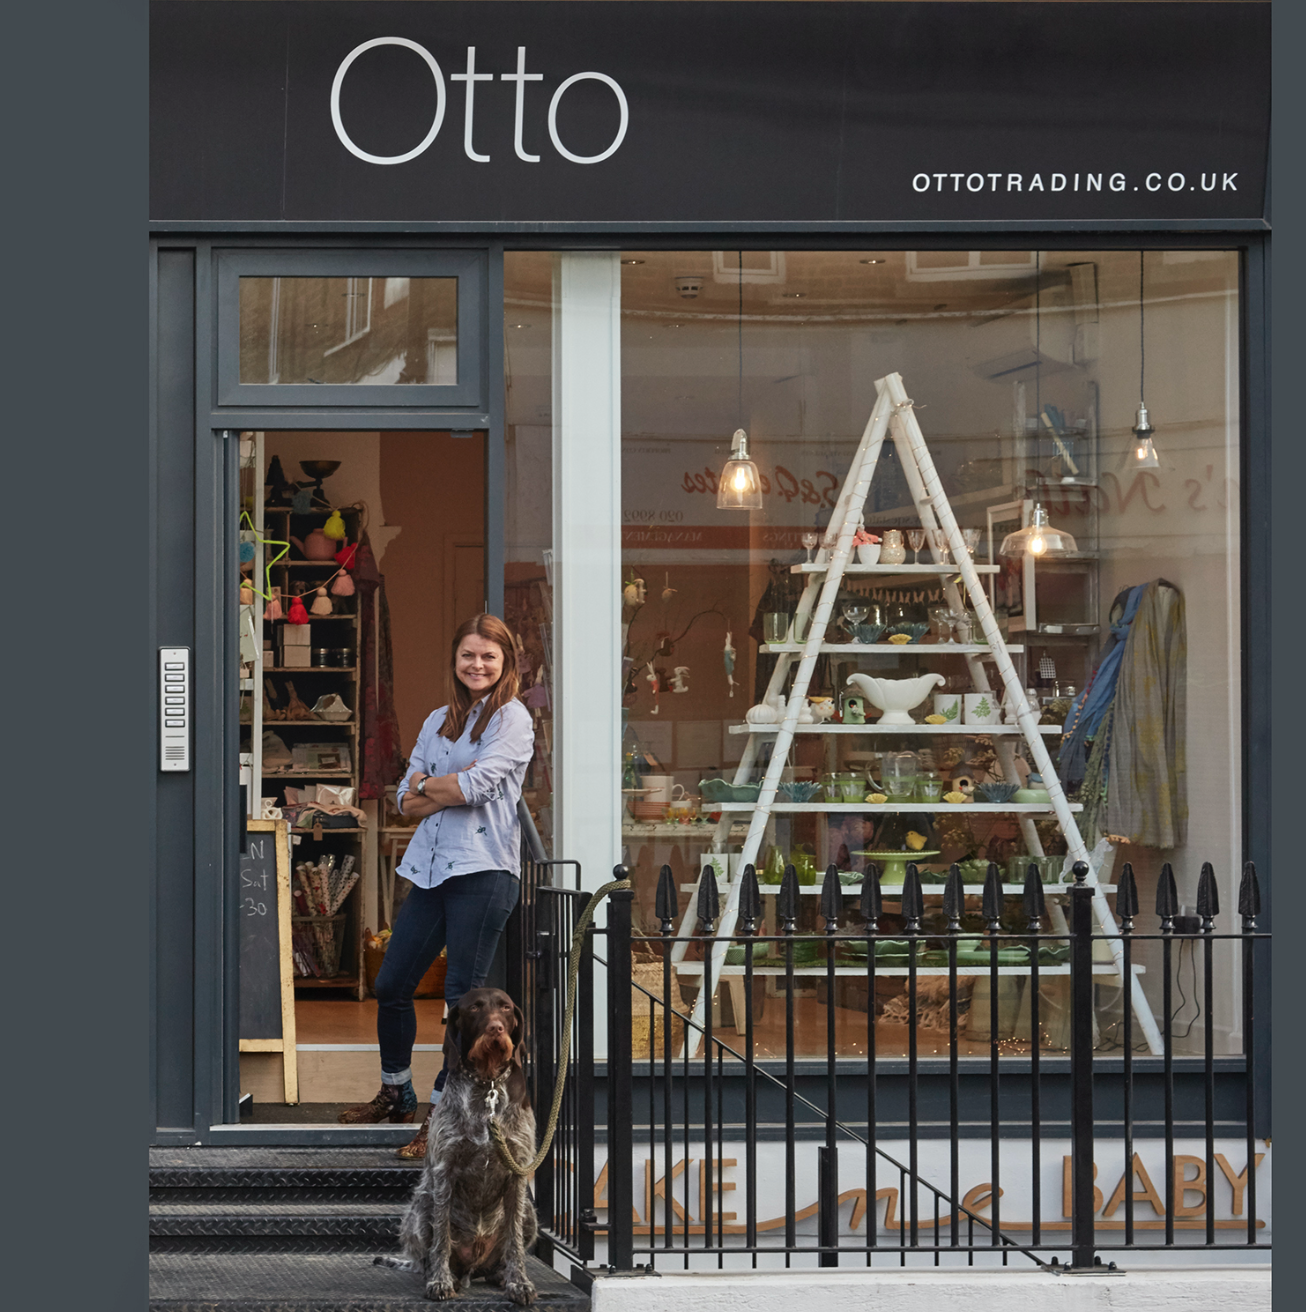 Otto the dog outside his shop front